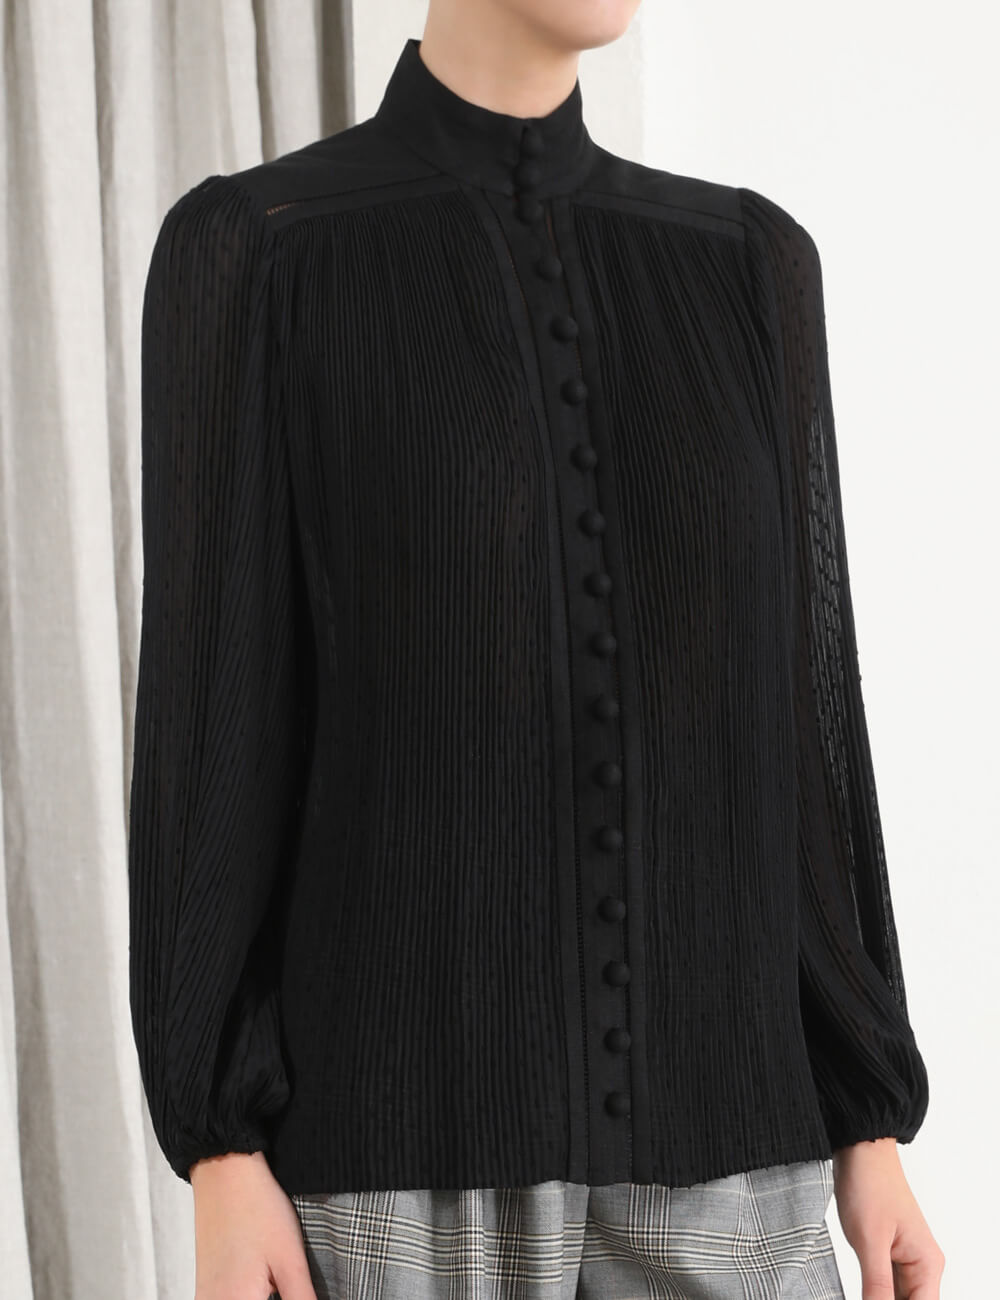 Espionage Plisse Blouse